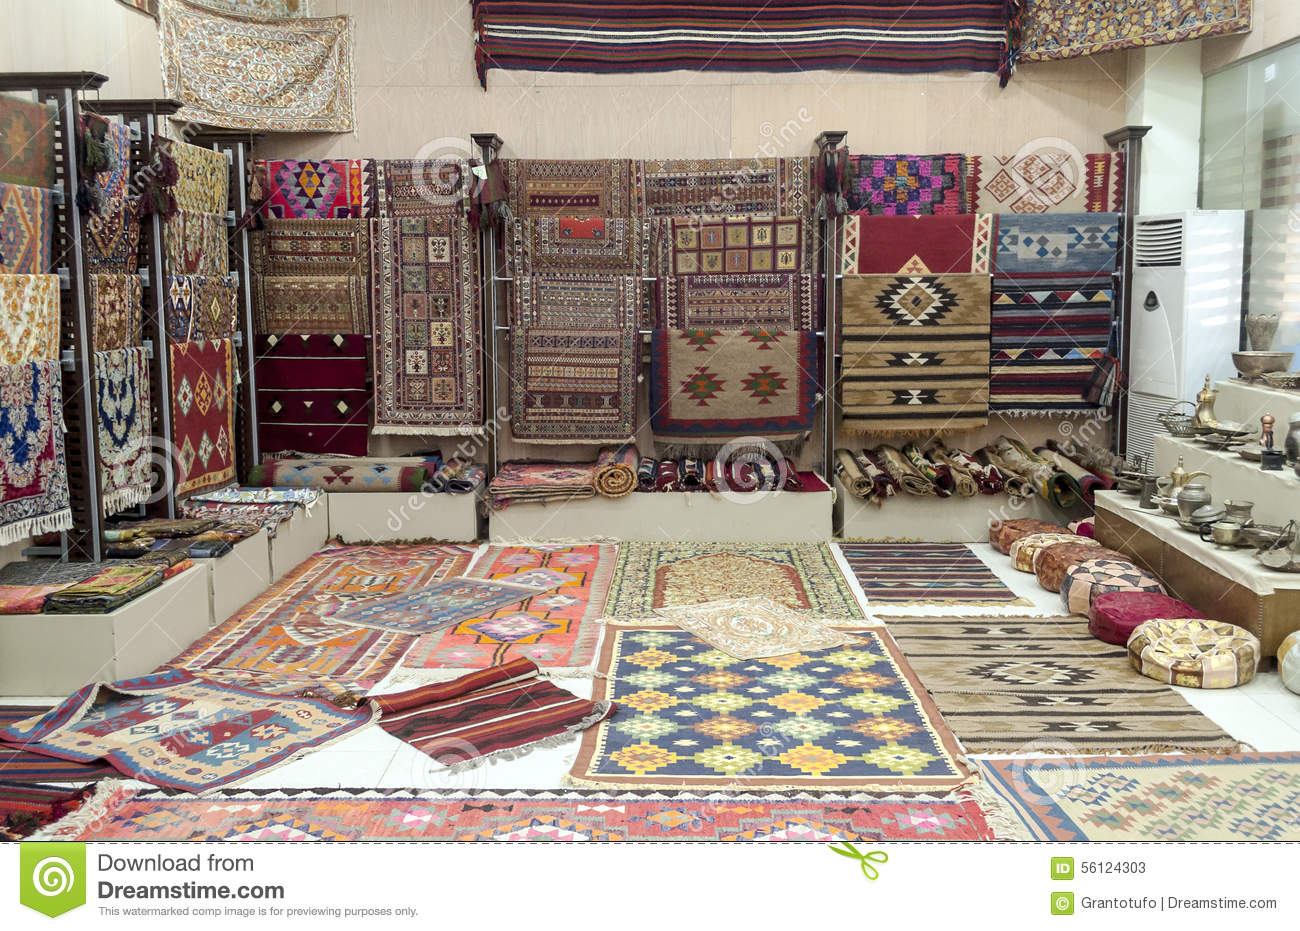 Tapijt Design Carpet Shop Stock Image. Image Of Carpet, Handicraft